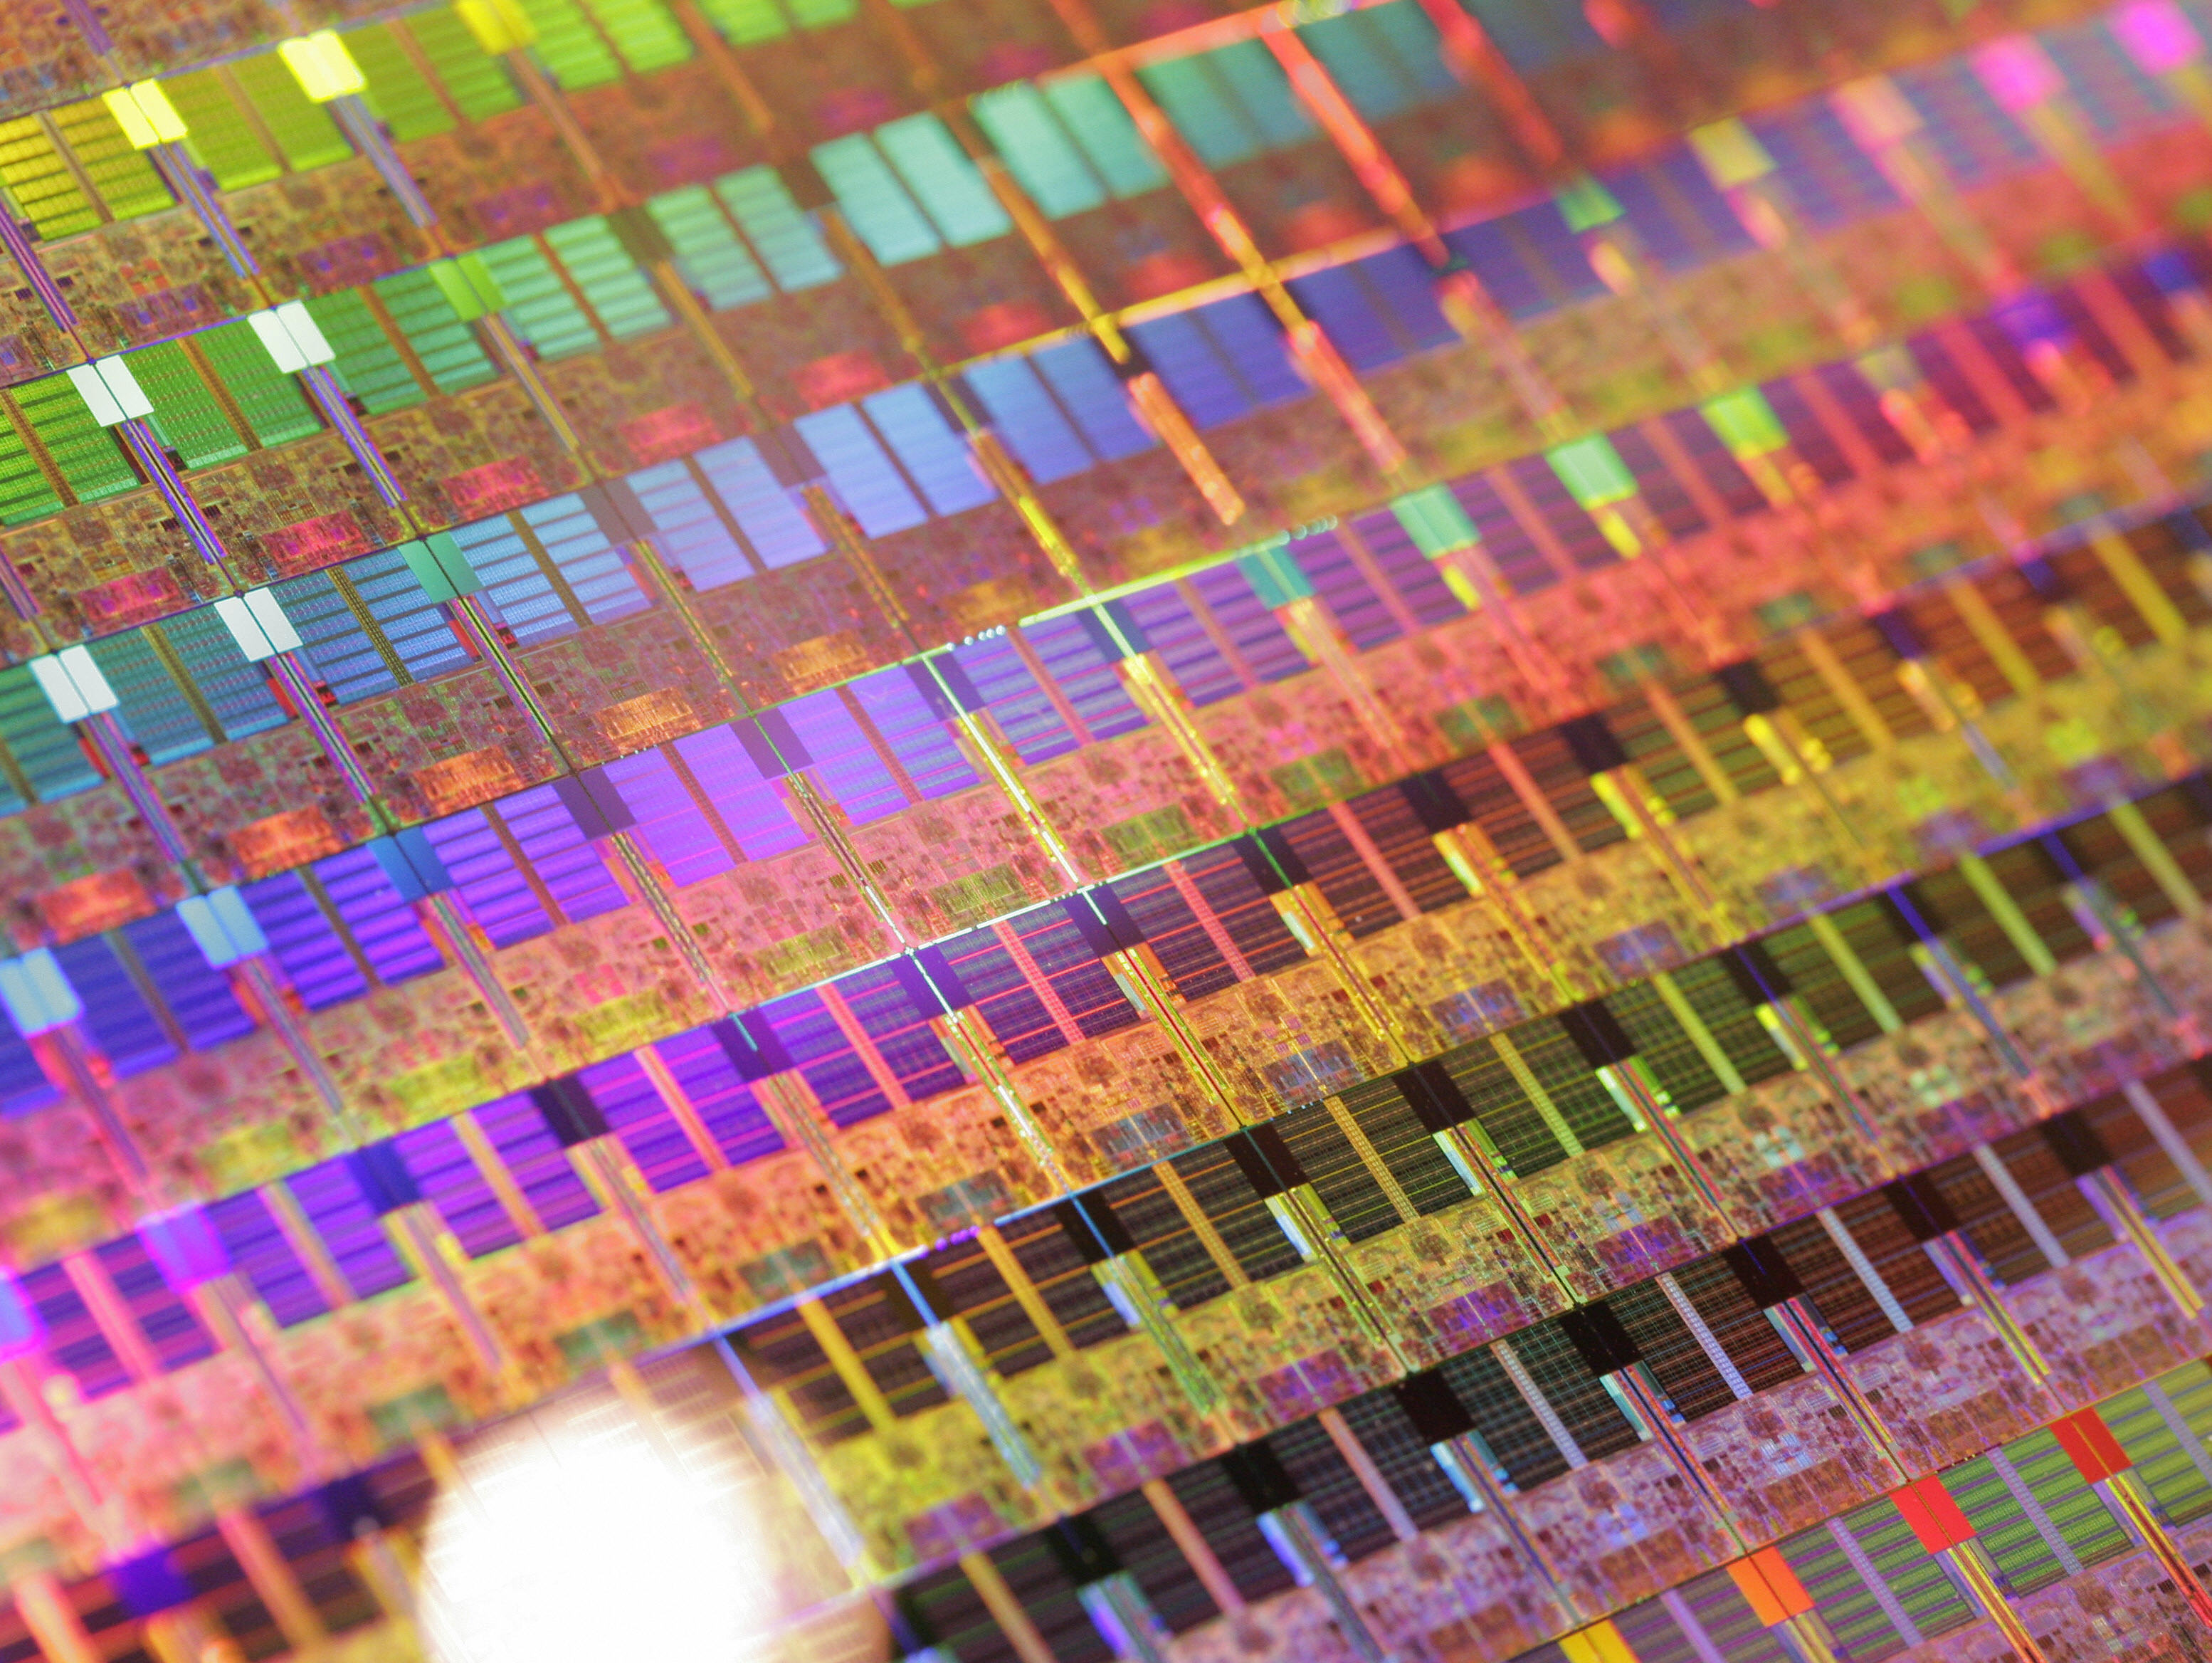 Chip breakthrough turns optical data into readable soundwaves